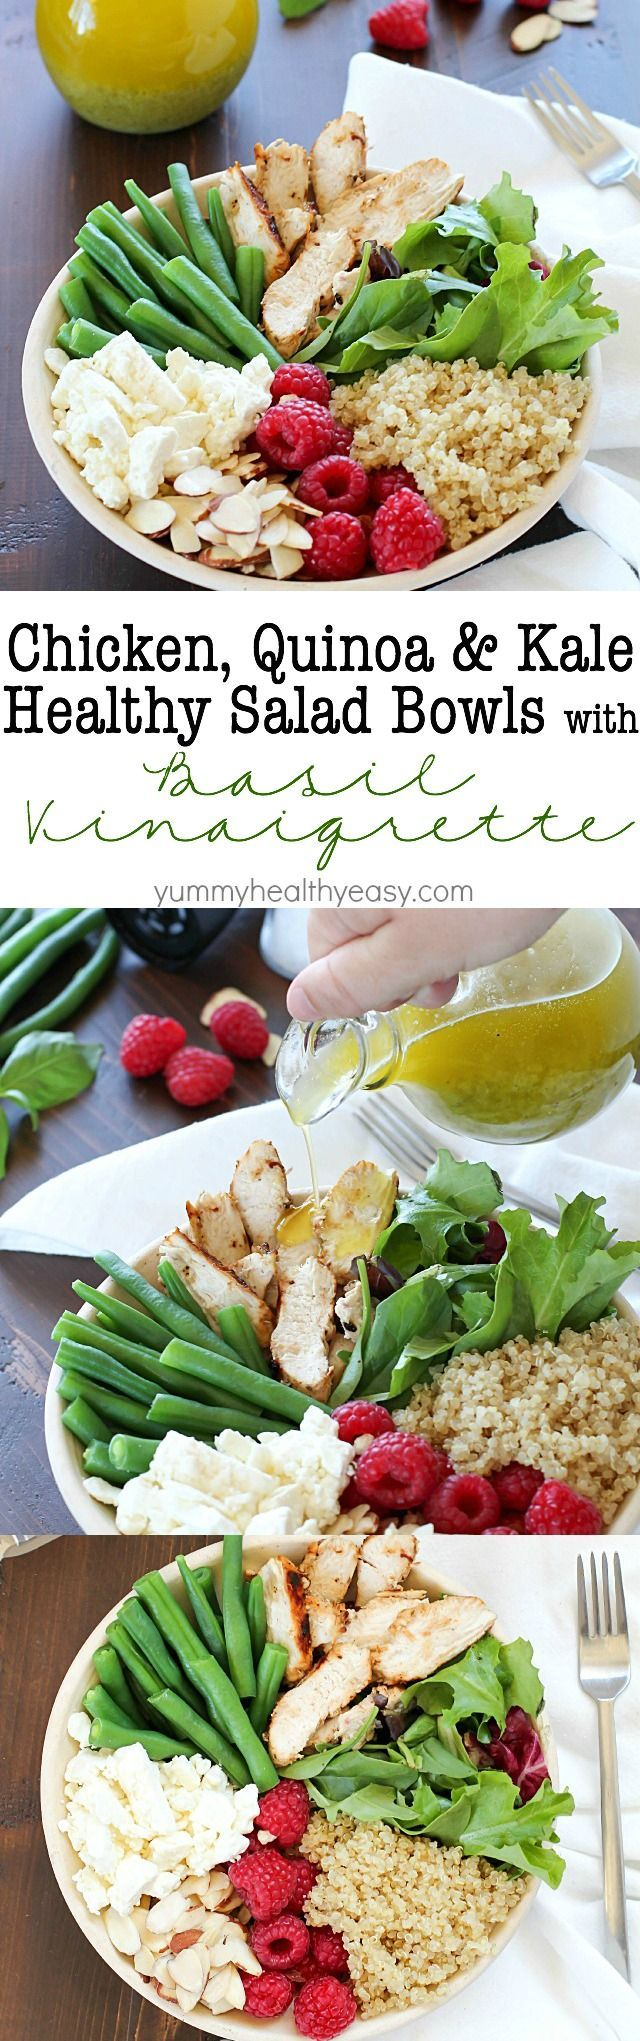 yummy salad bowl recipe full of grilled chicken, cooked quinoa, kale ...